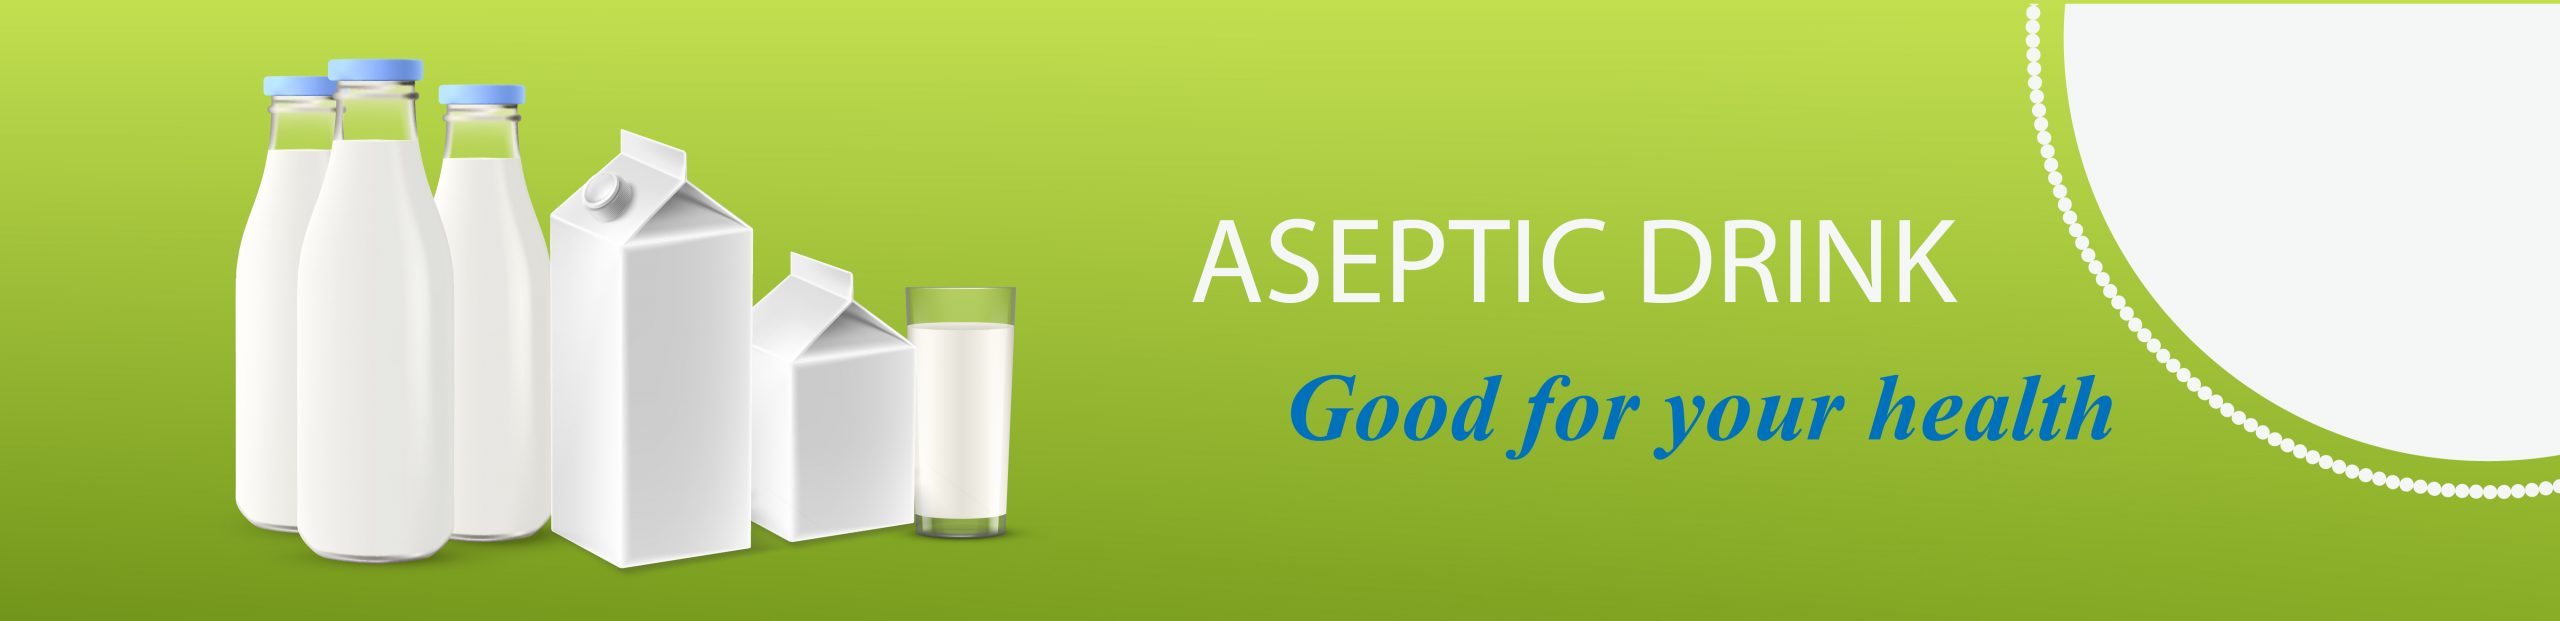 Aseptic_1360x330